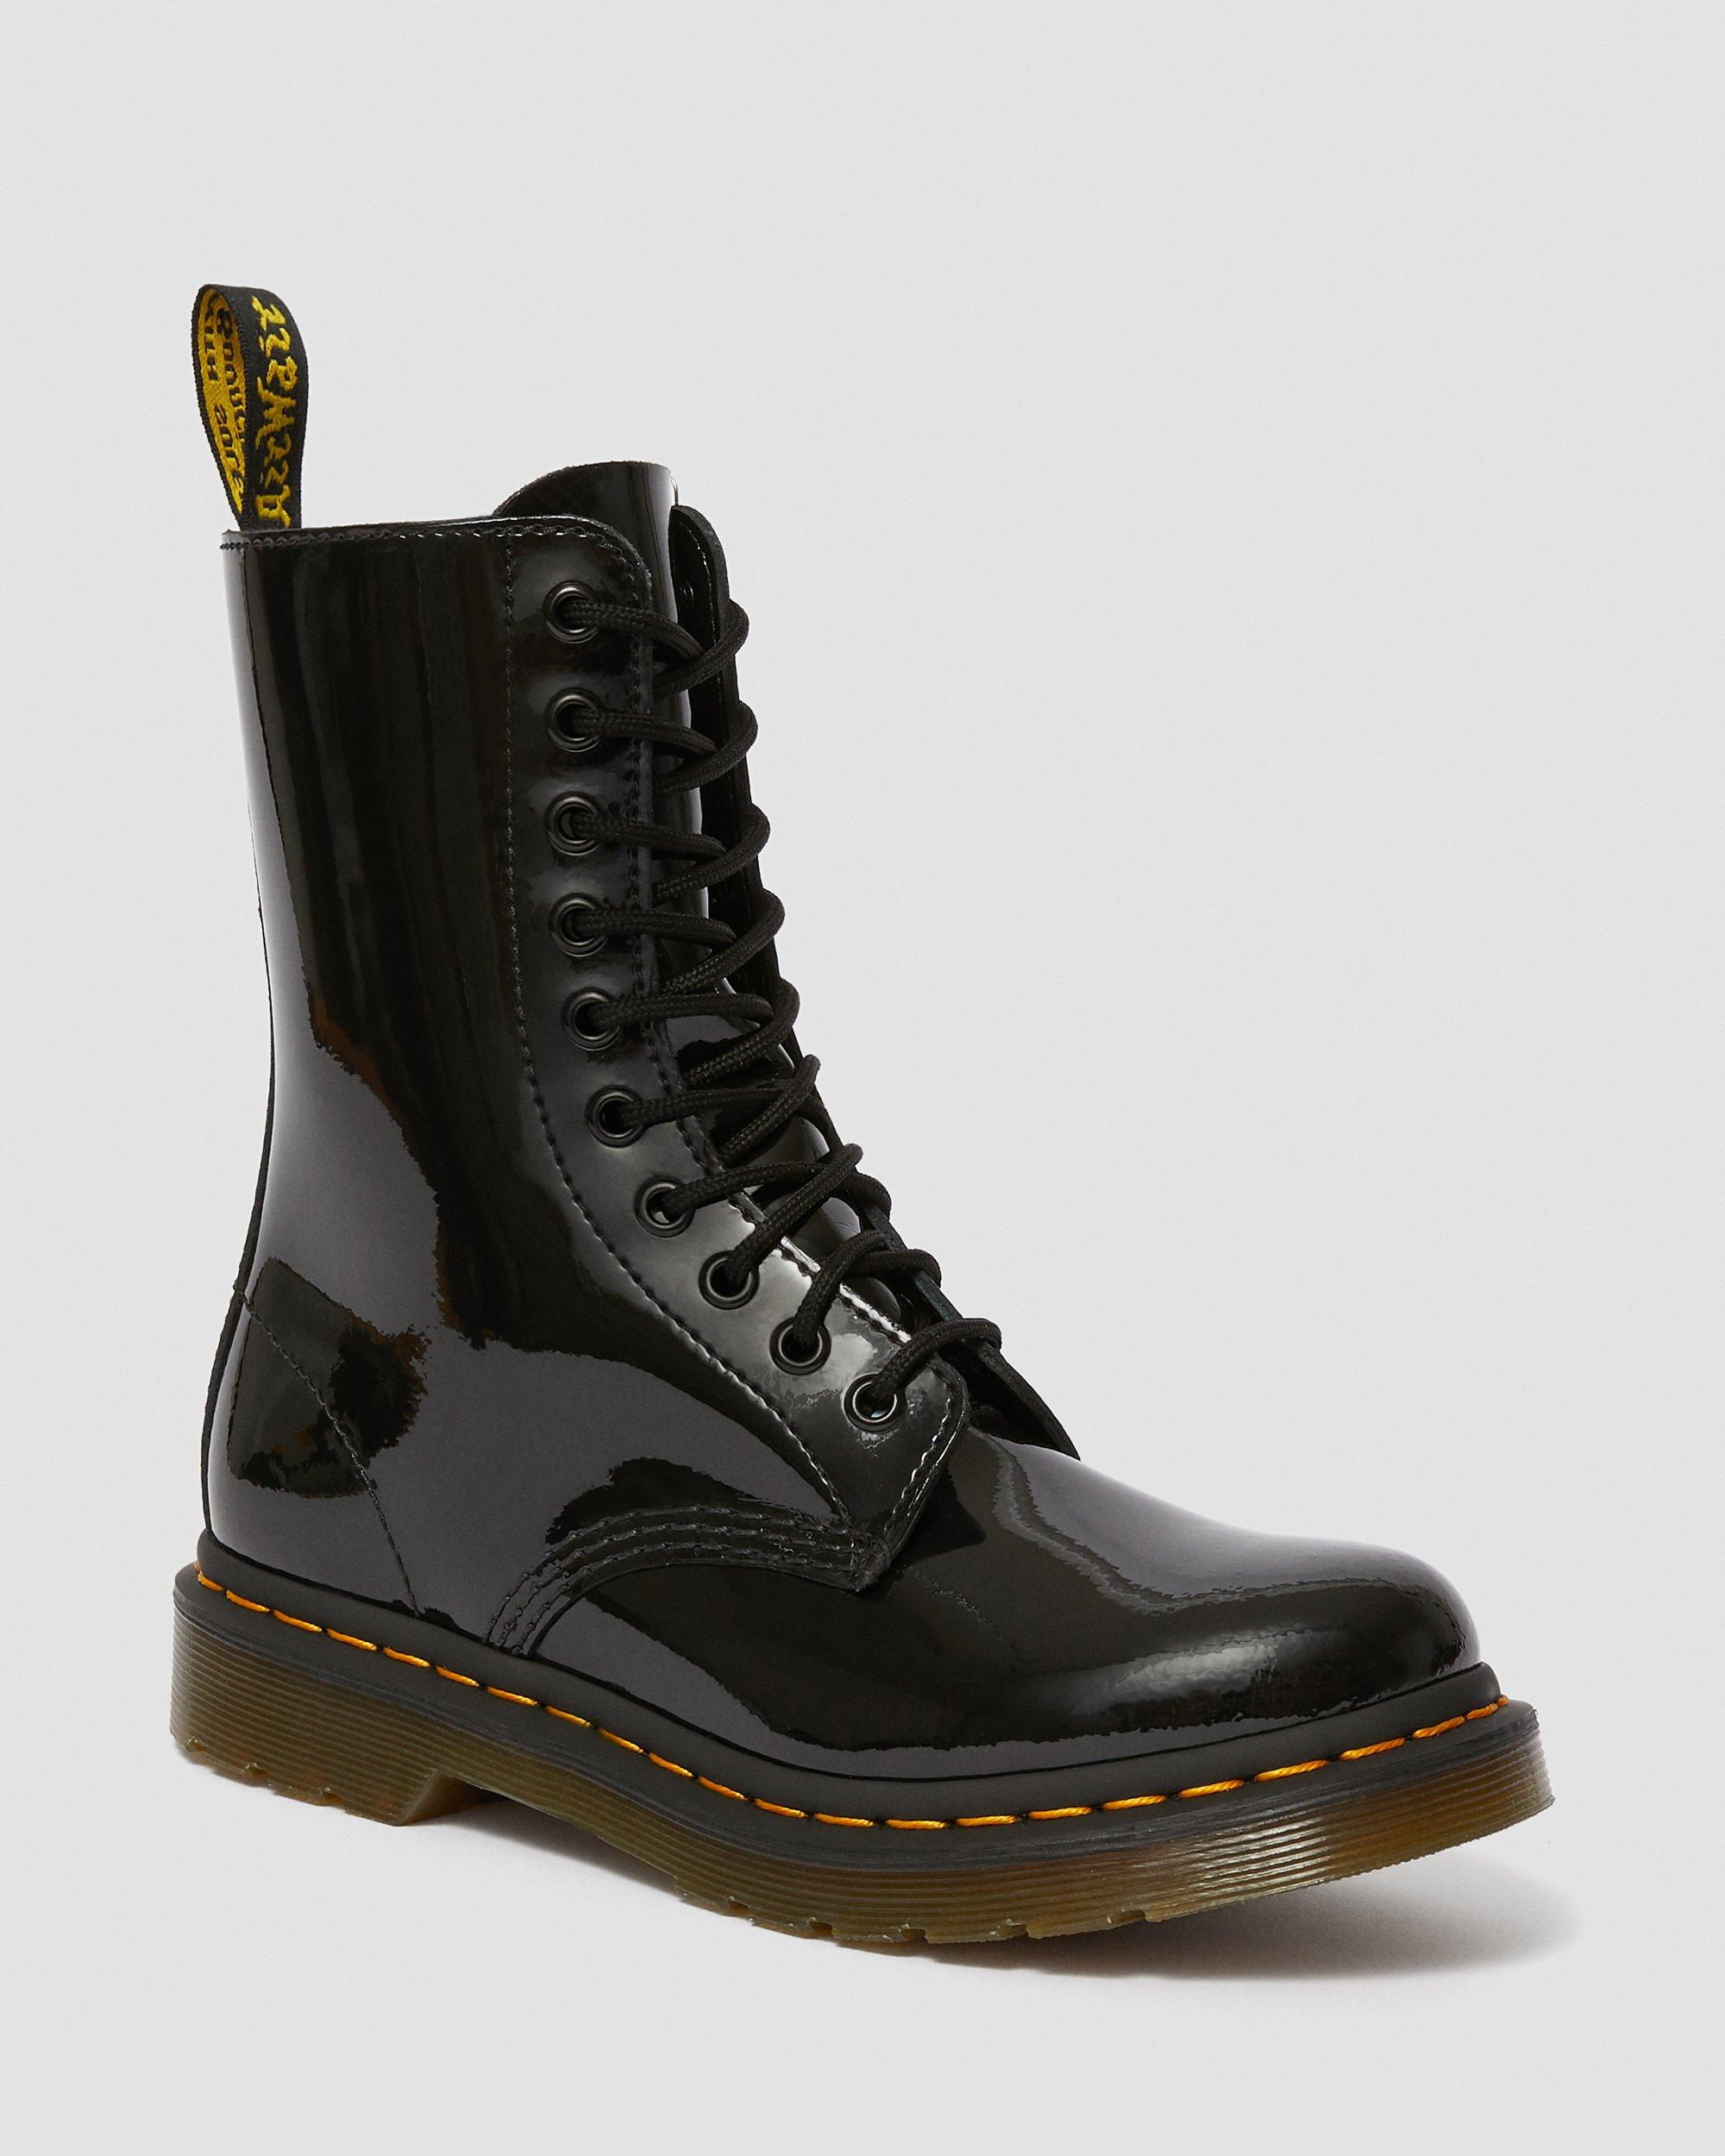 DR MARTENS 1490 WOMEN'S PATENT LEATHER MID CALF BOOTS